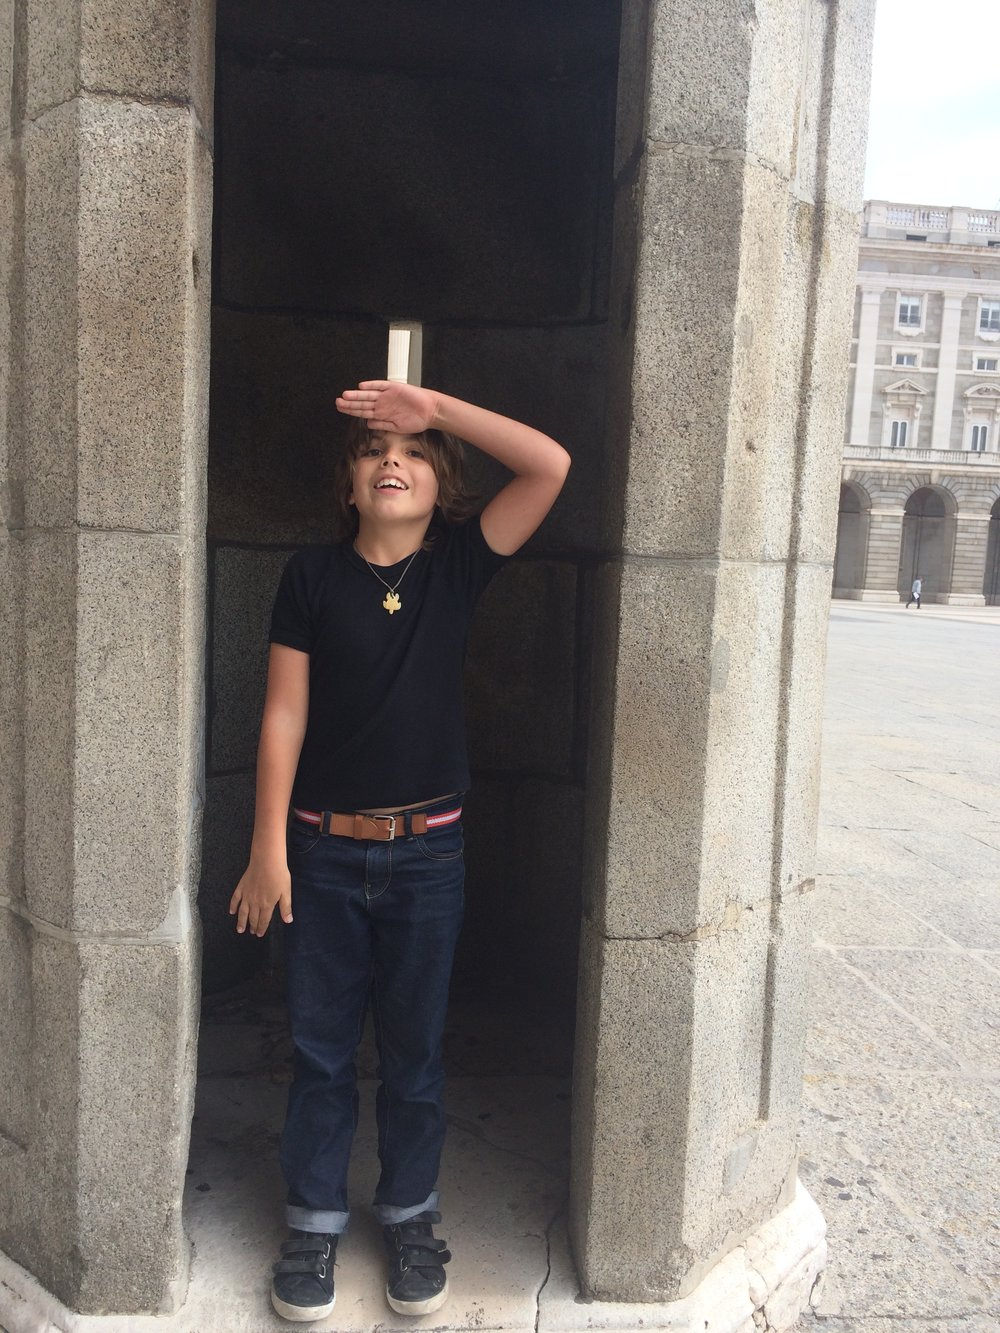 we went to this museum called the armour museum and i found these soldiers houses where they stand, turn around and salute. So I stood in one, and Hugo in the other and we marched and saluted like soldiers.